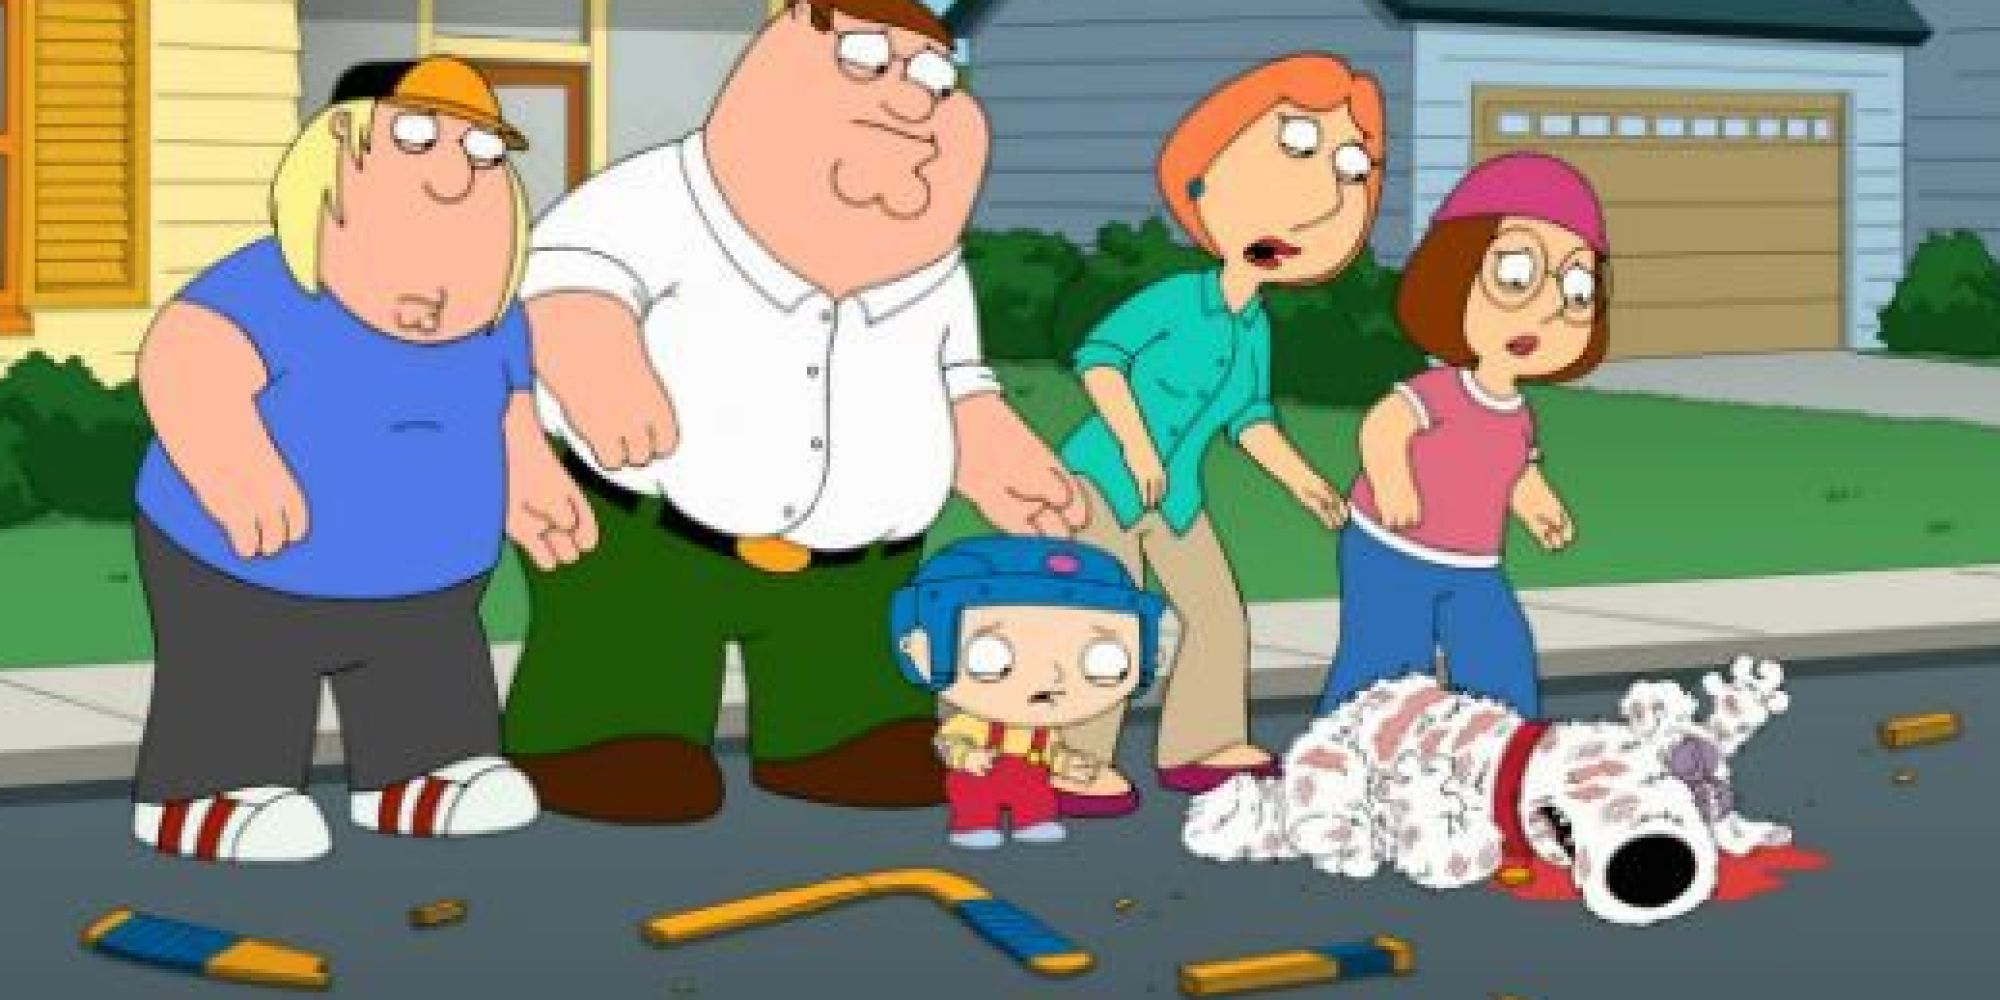 brian essay family guy 4 reasons brian griffin has become the worst family guy character maybe brian just should have stayed dead 13 9.